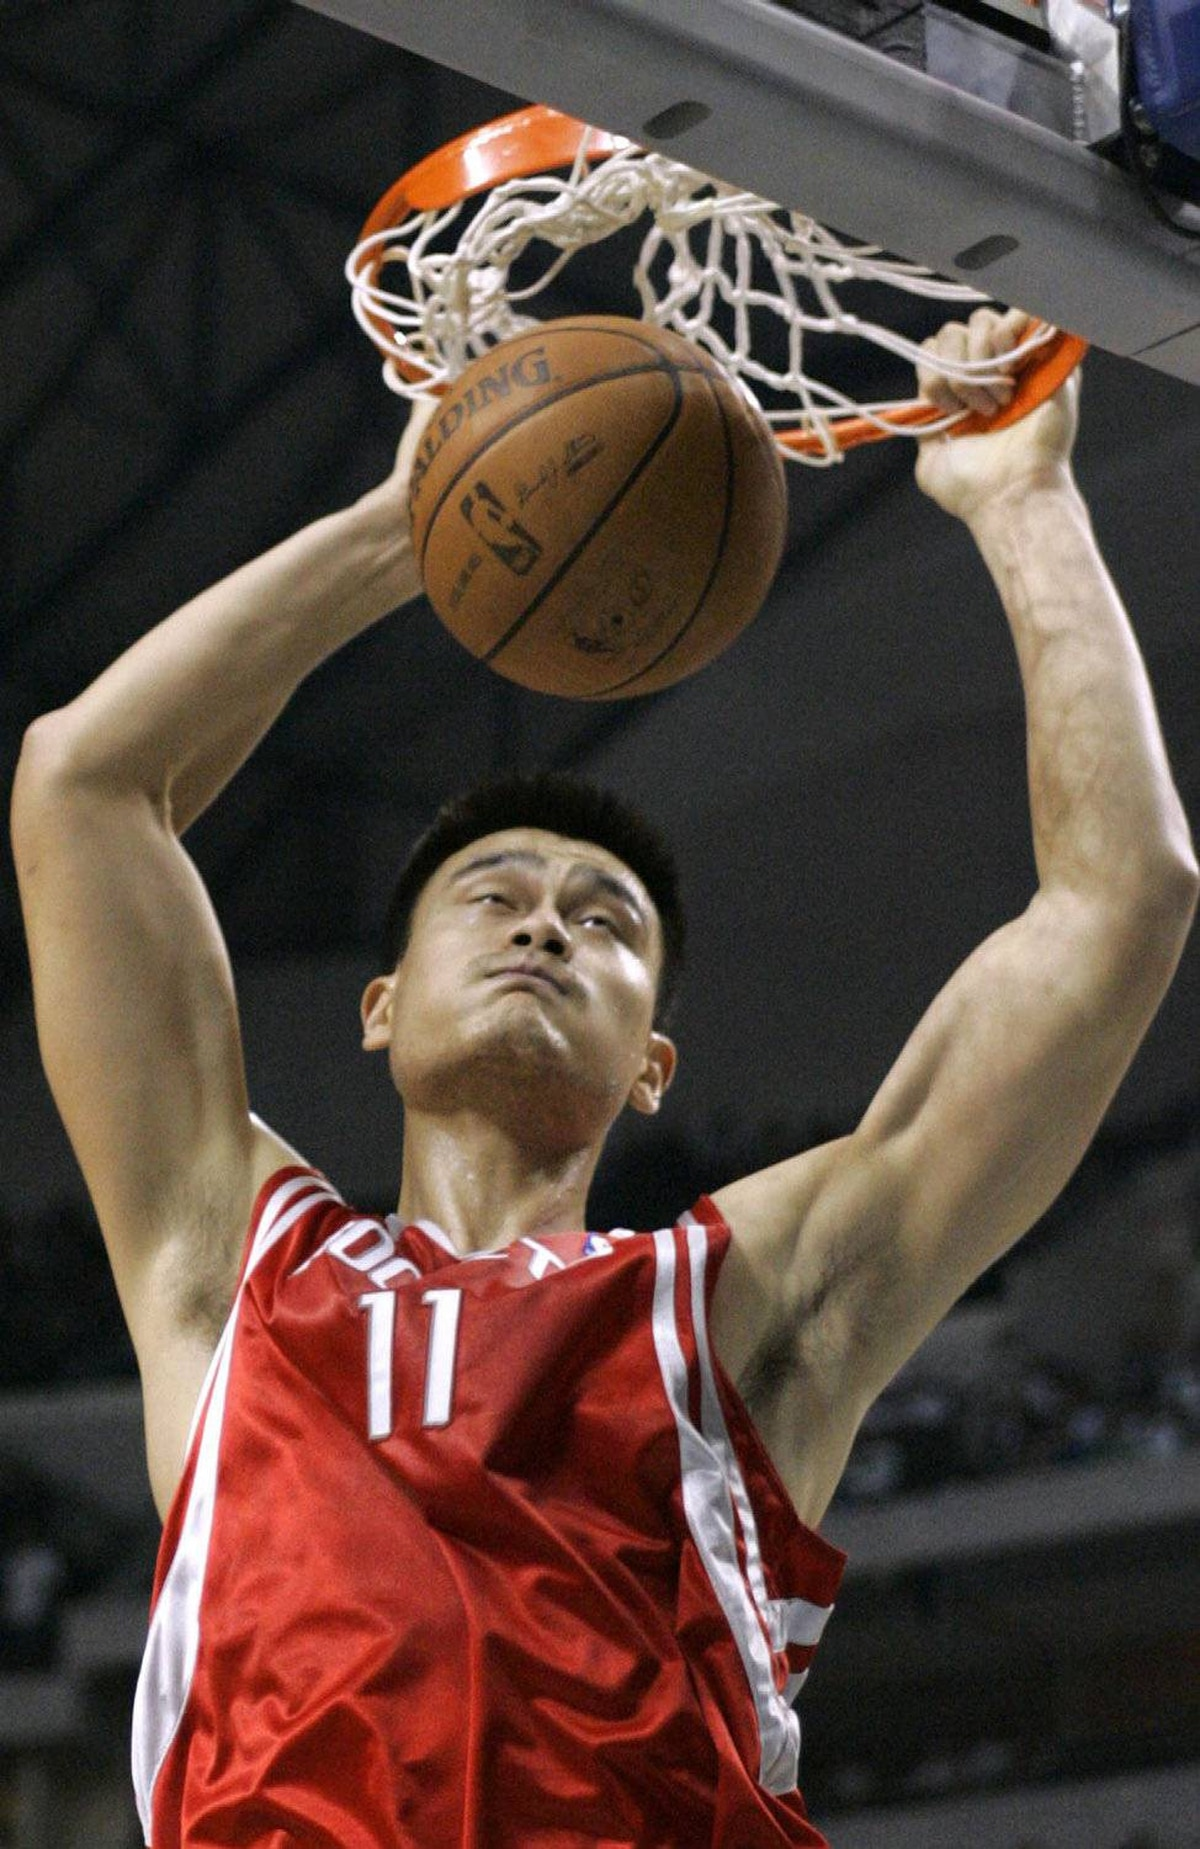 Houston Rockets center Yao Ming, from China, scores against the Dallas Mavericks in the first half of their NBA basketball game in Dallas, Thursday, Oct. 30, 2008.